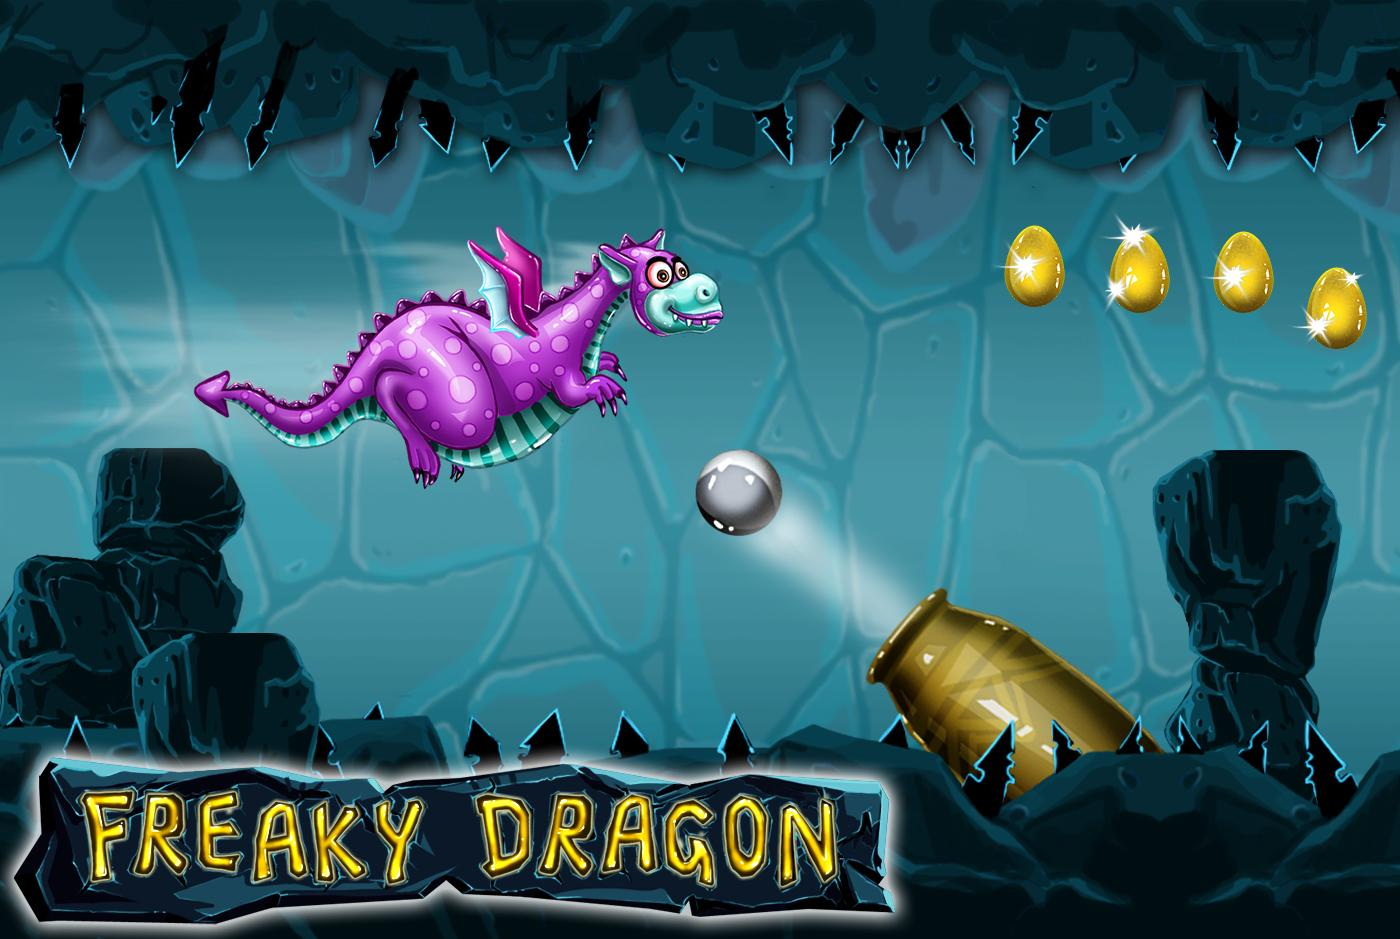 Freaky Dragon First Impression